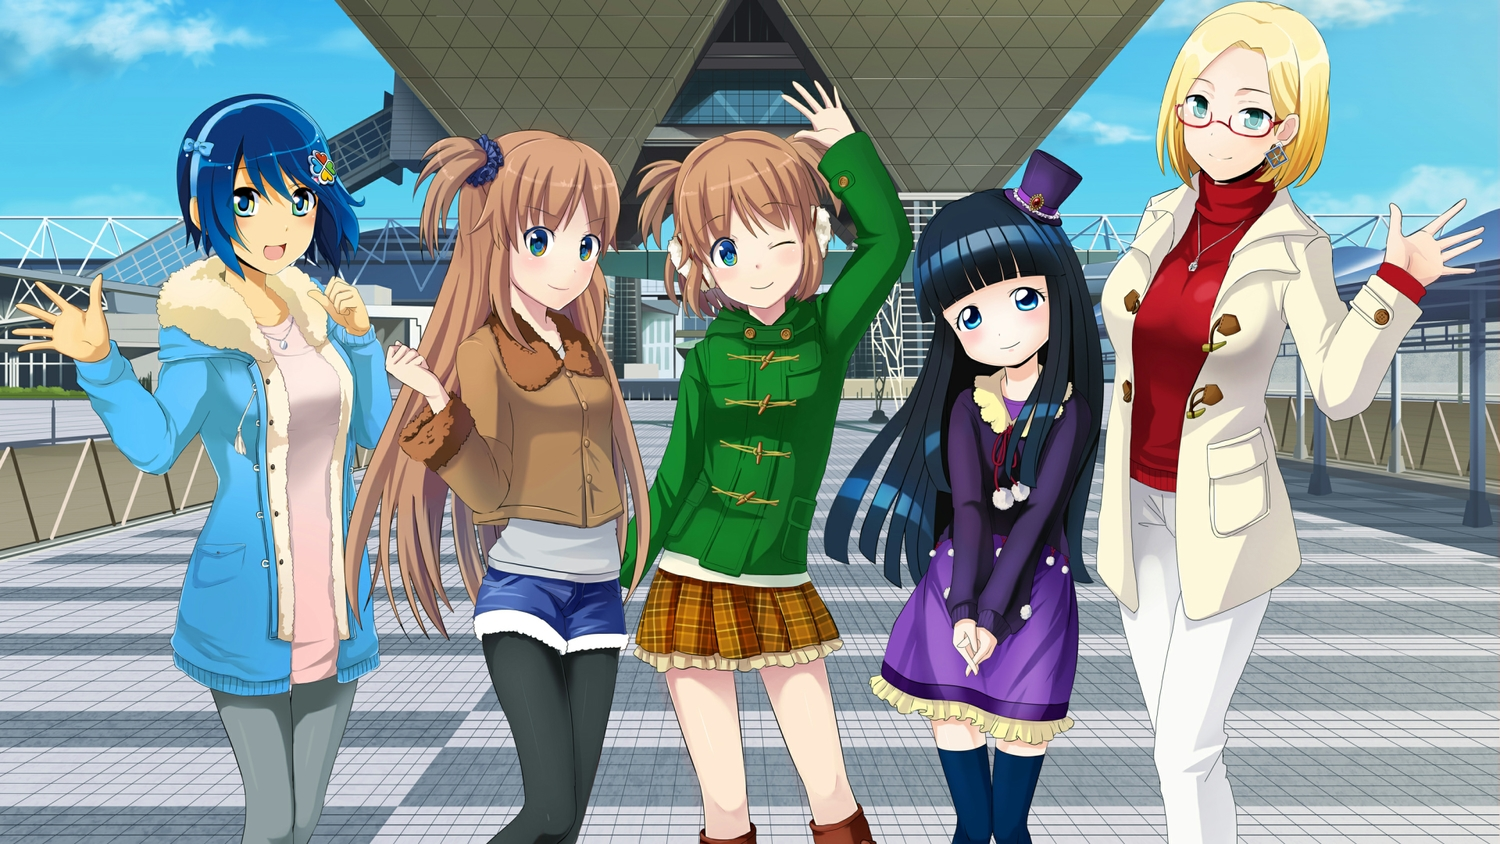 aqua_eyes black_hair blonde_hair blue_eyes blue_hair brown_hair claudia_madobe glasses hat headband long_hair madobe_ai madobe_nanami madobe_yuu microsoft os-tan pantyhose ponytail short_hair shorts skirt tagme_(character) thighhighs twins windows